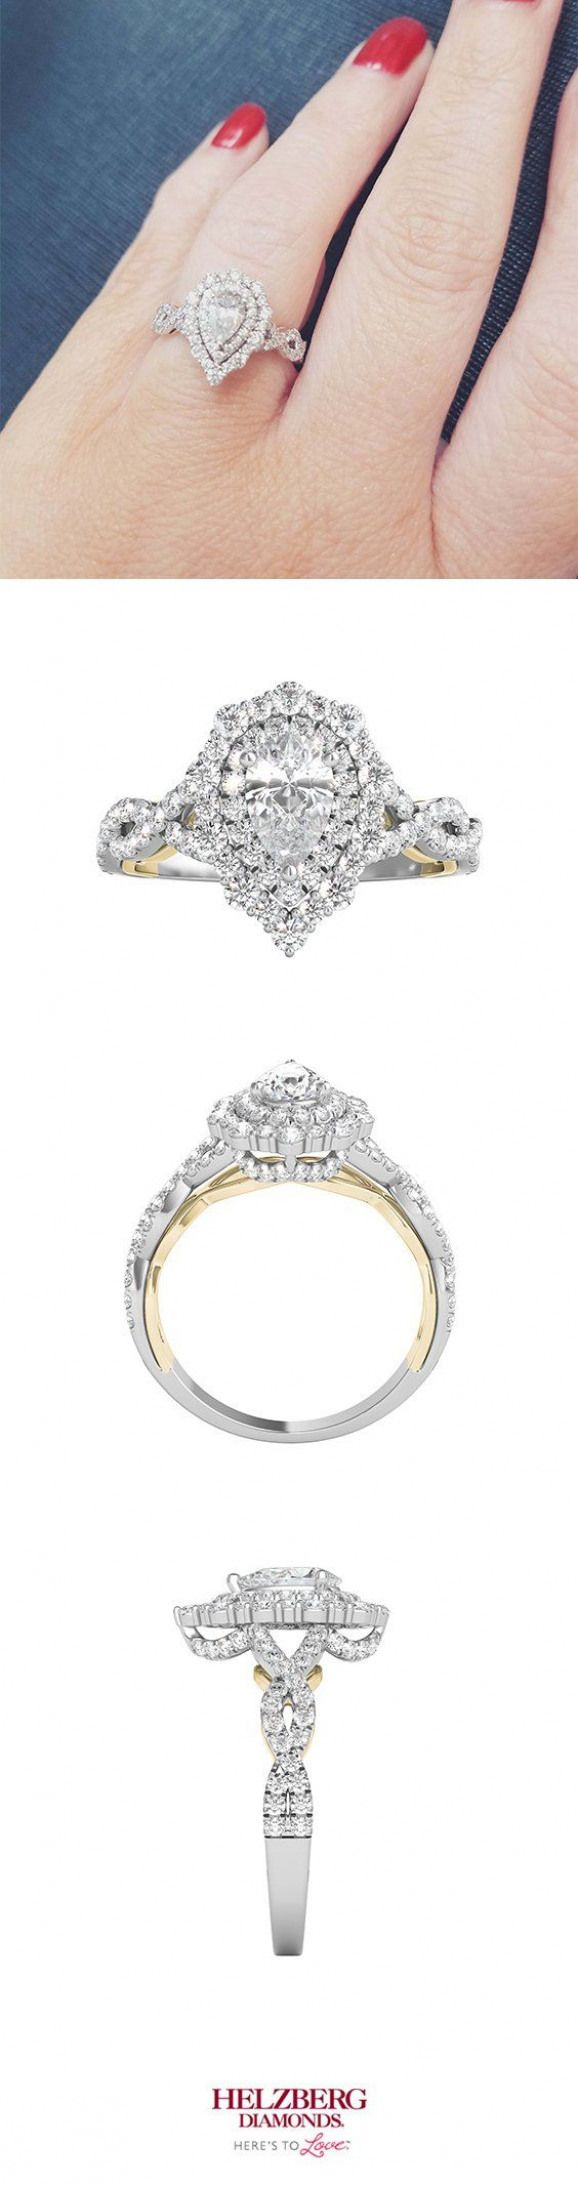 Theres Only One Way To Describe Stephanies Zac Posen Engagement Ring Beautiful Helz Gorgeous Wedding Rings Popular Engagement Rings Engagement Rings For Men